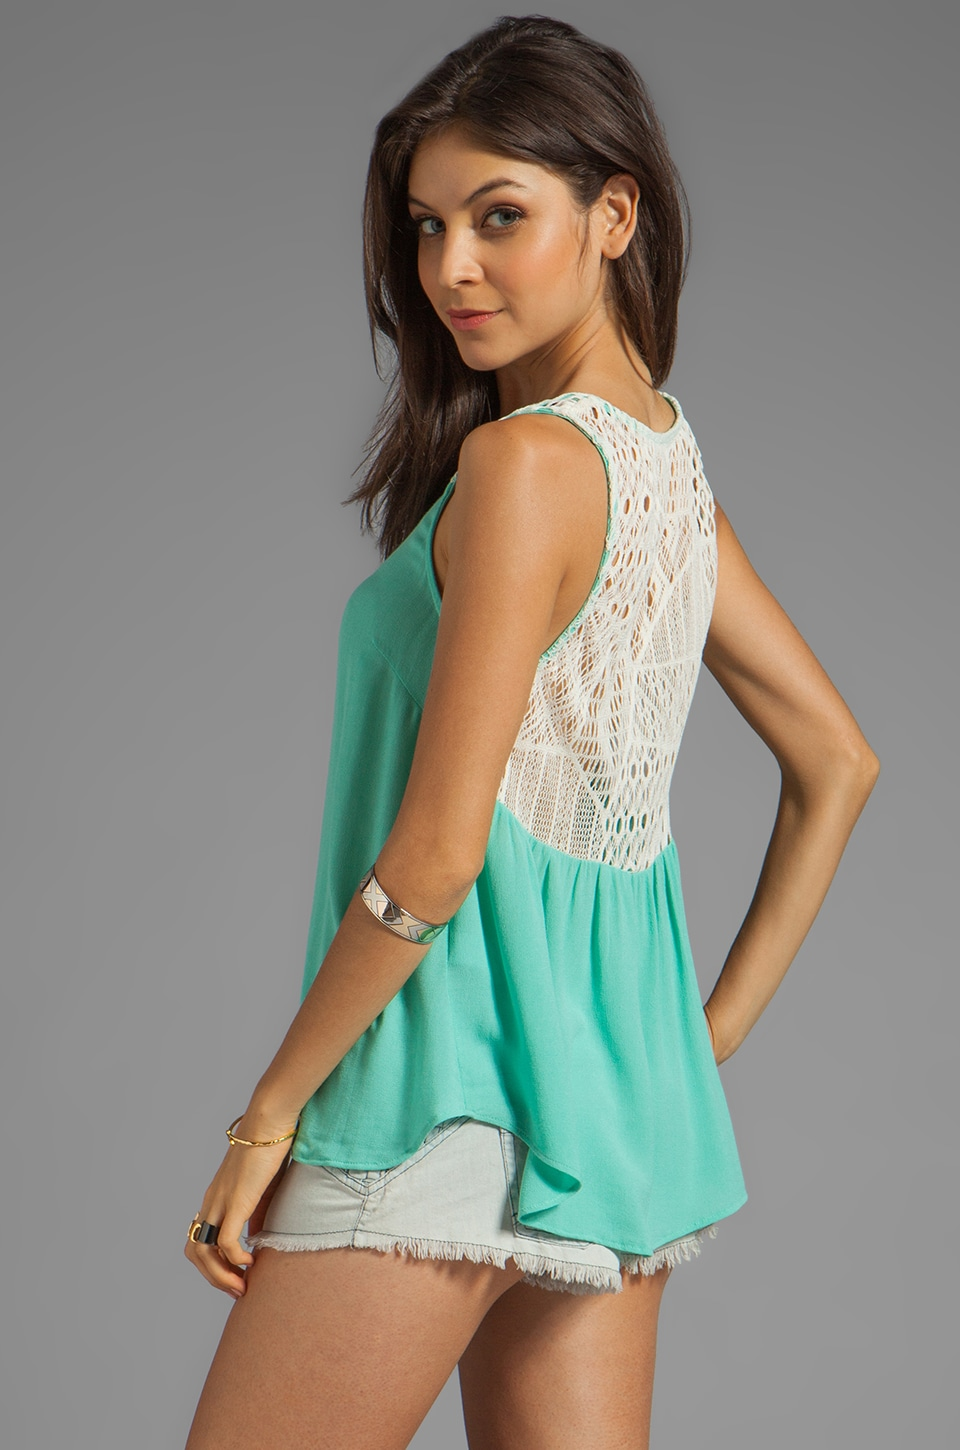 Ella Moss Lily Lace Tank in Mint